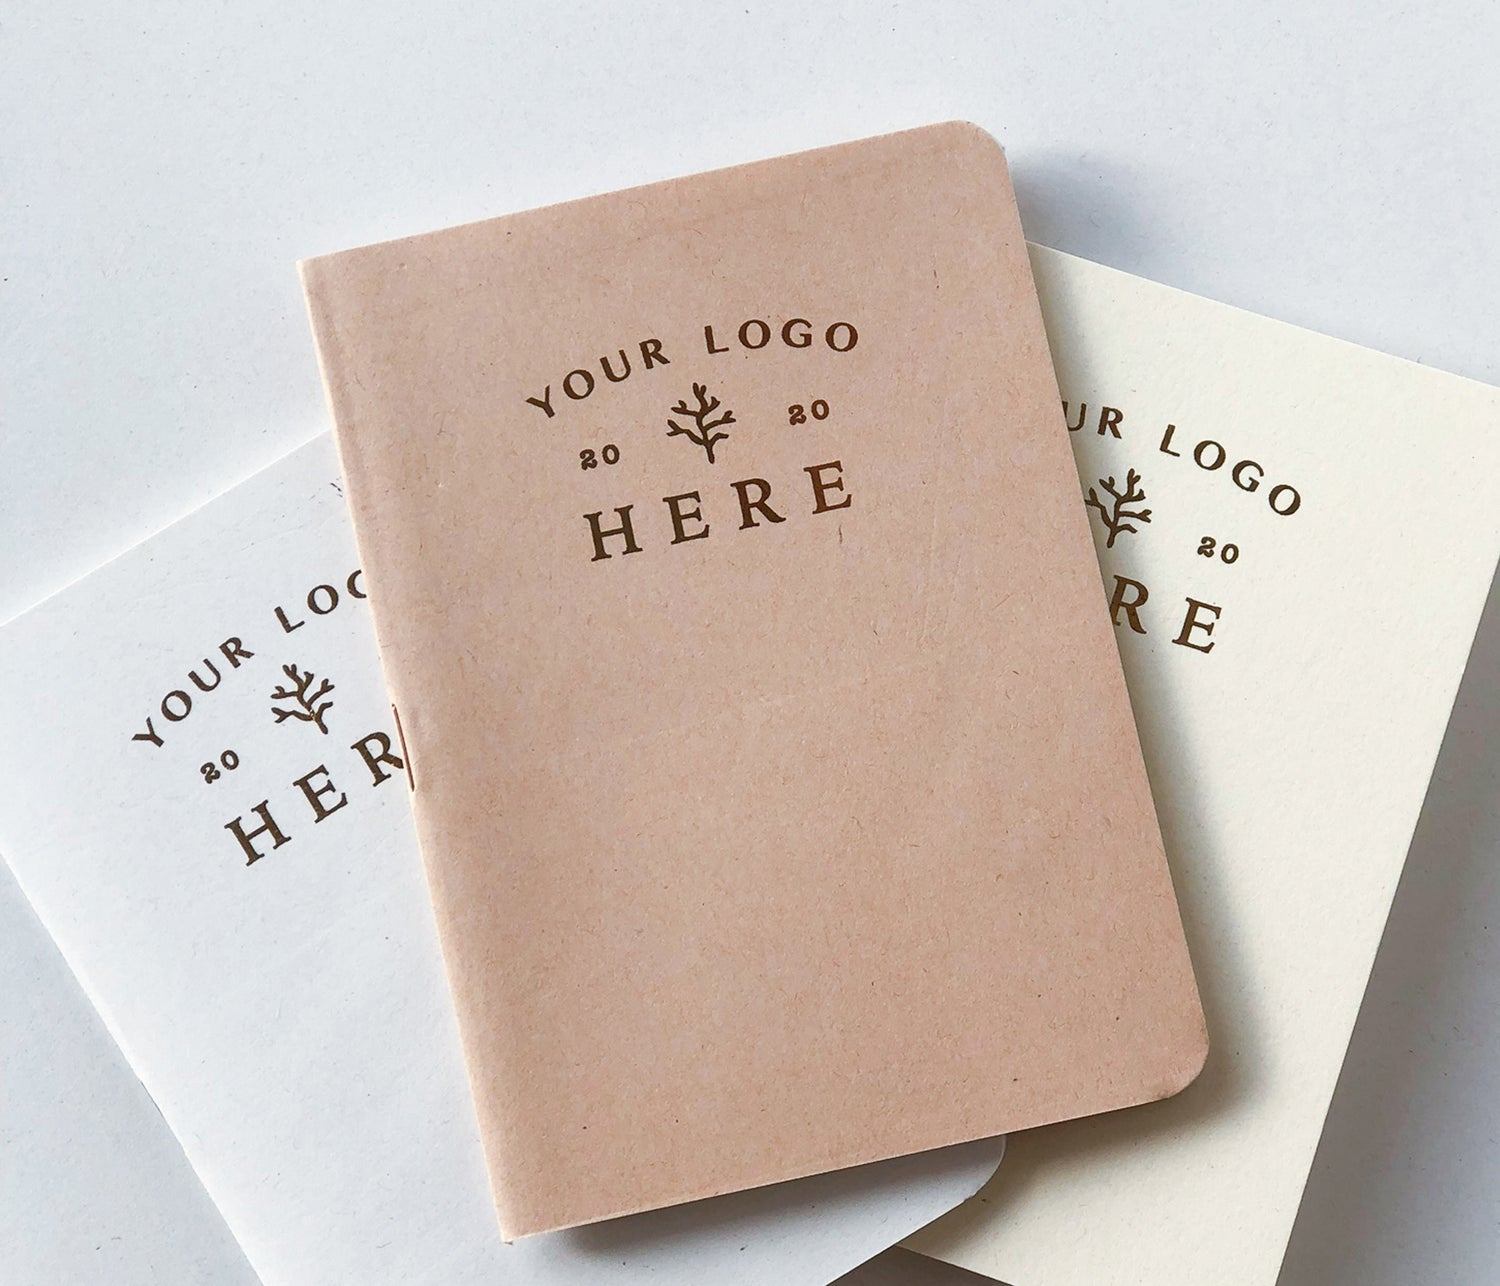 Image of Personalized A6 size notebook